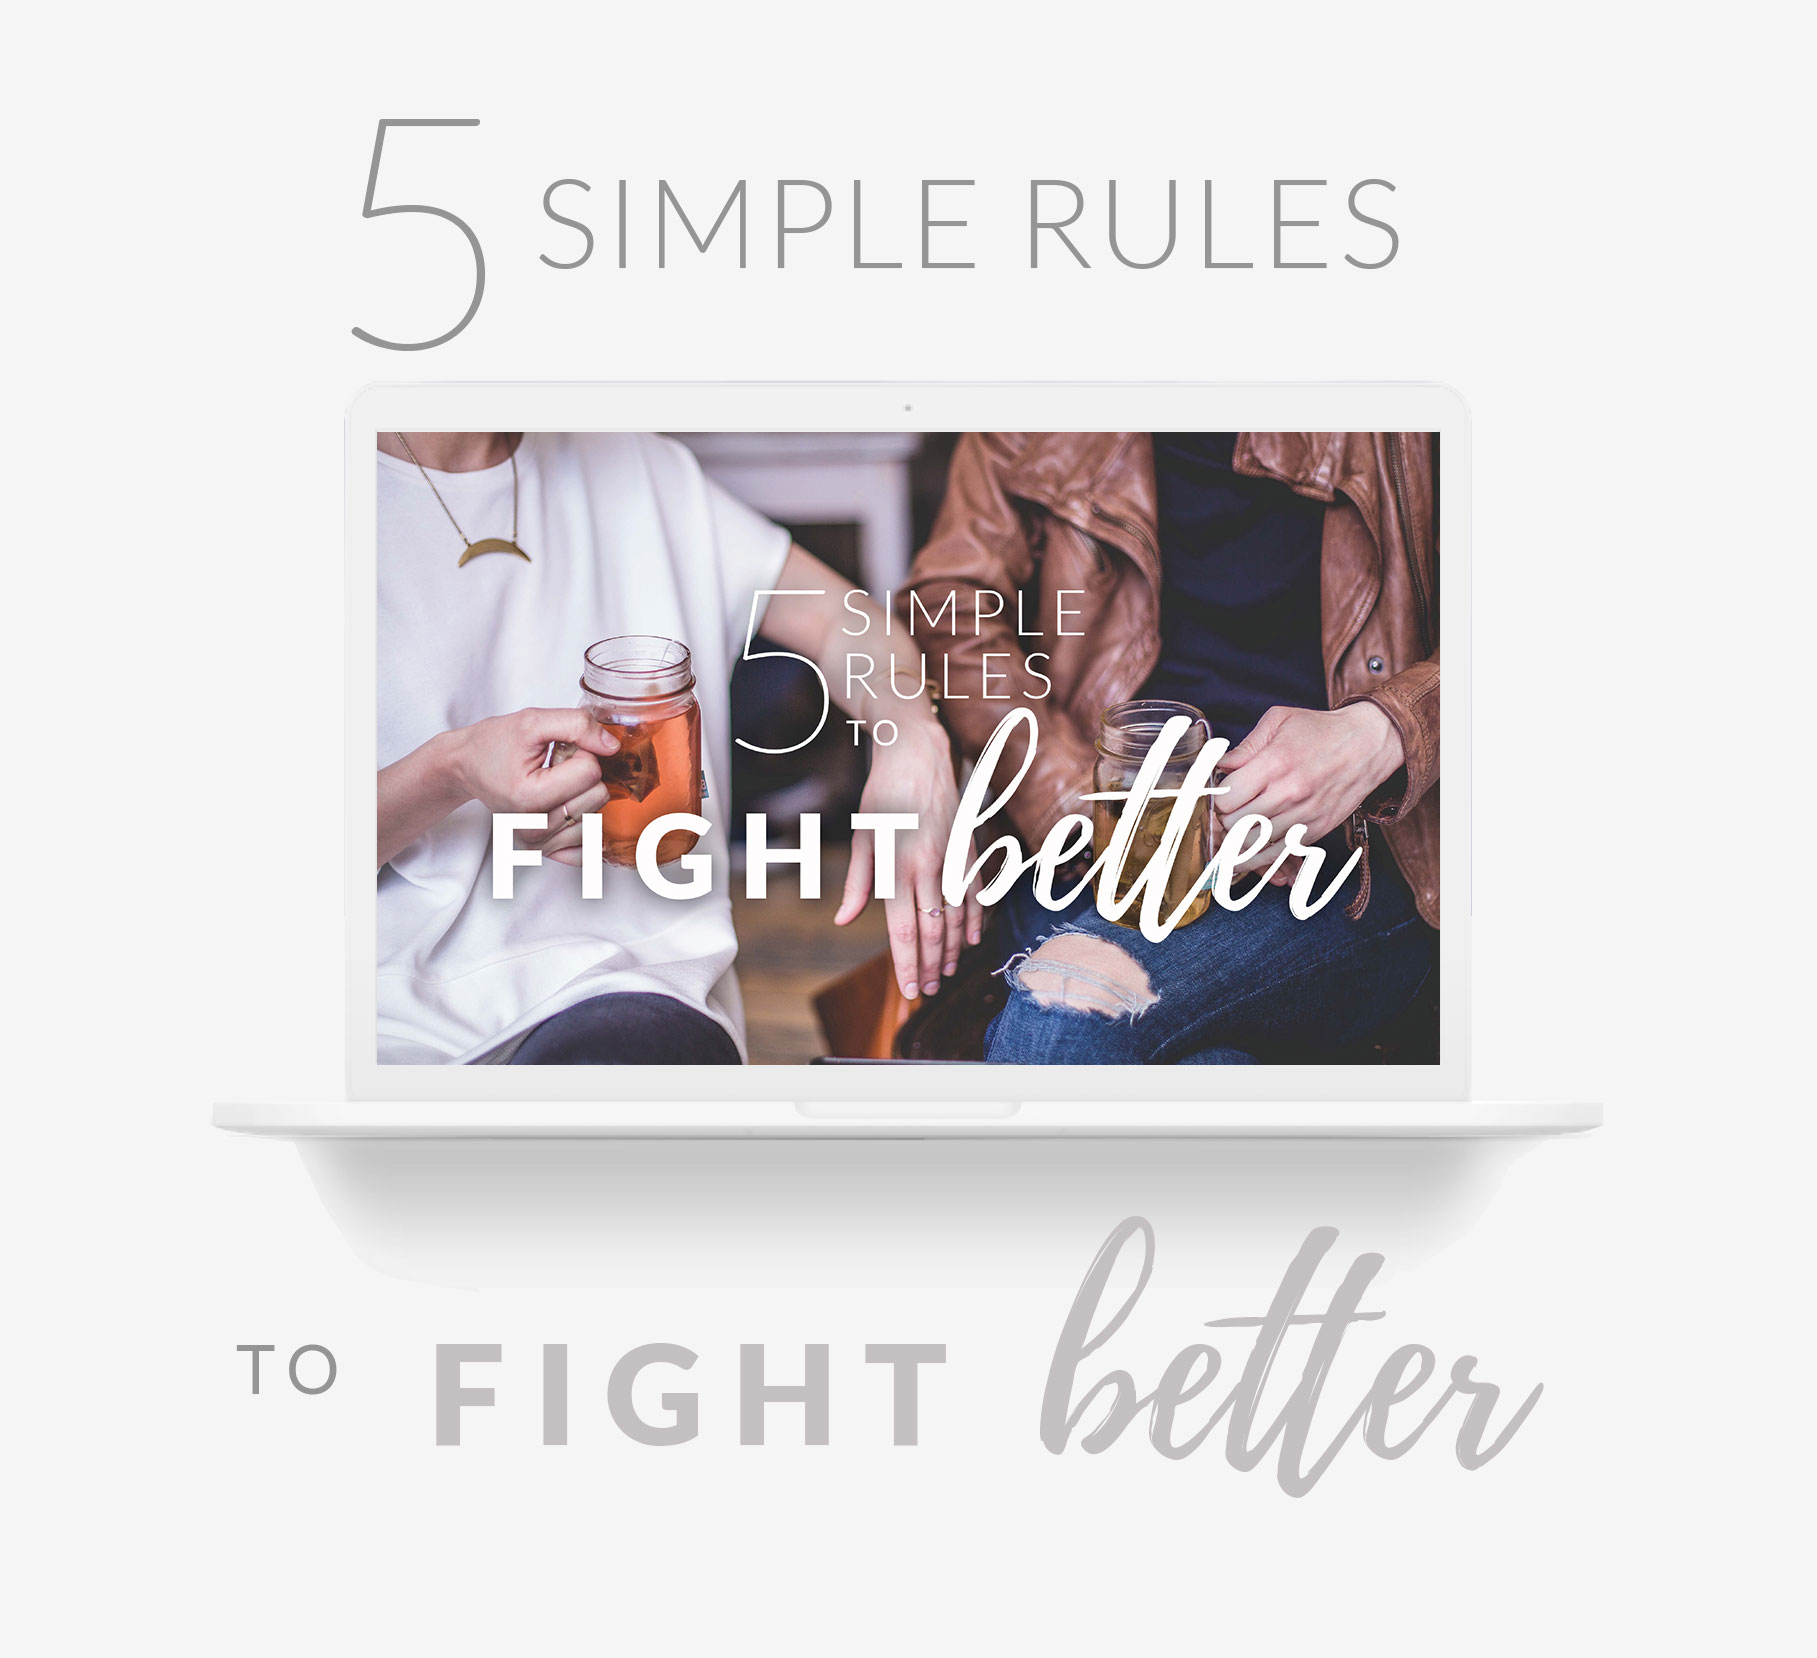 conflict in relationship | fight too much